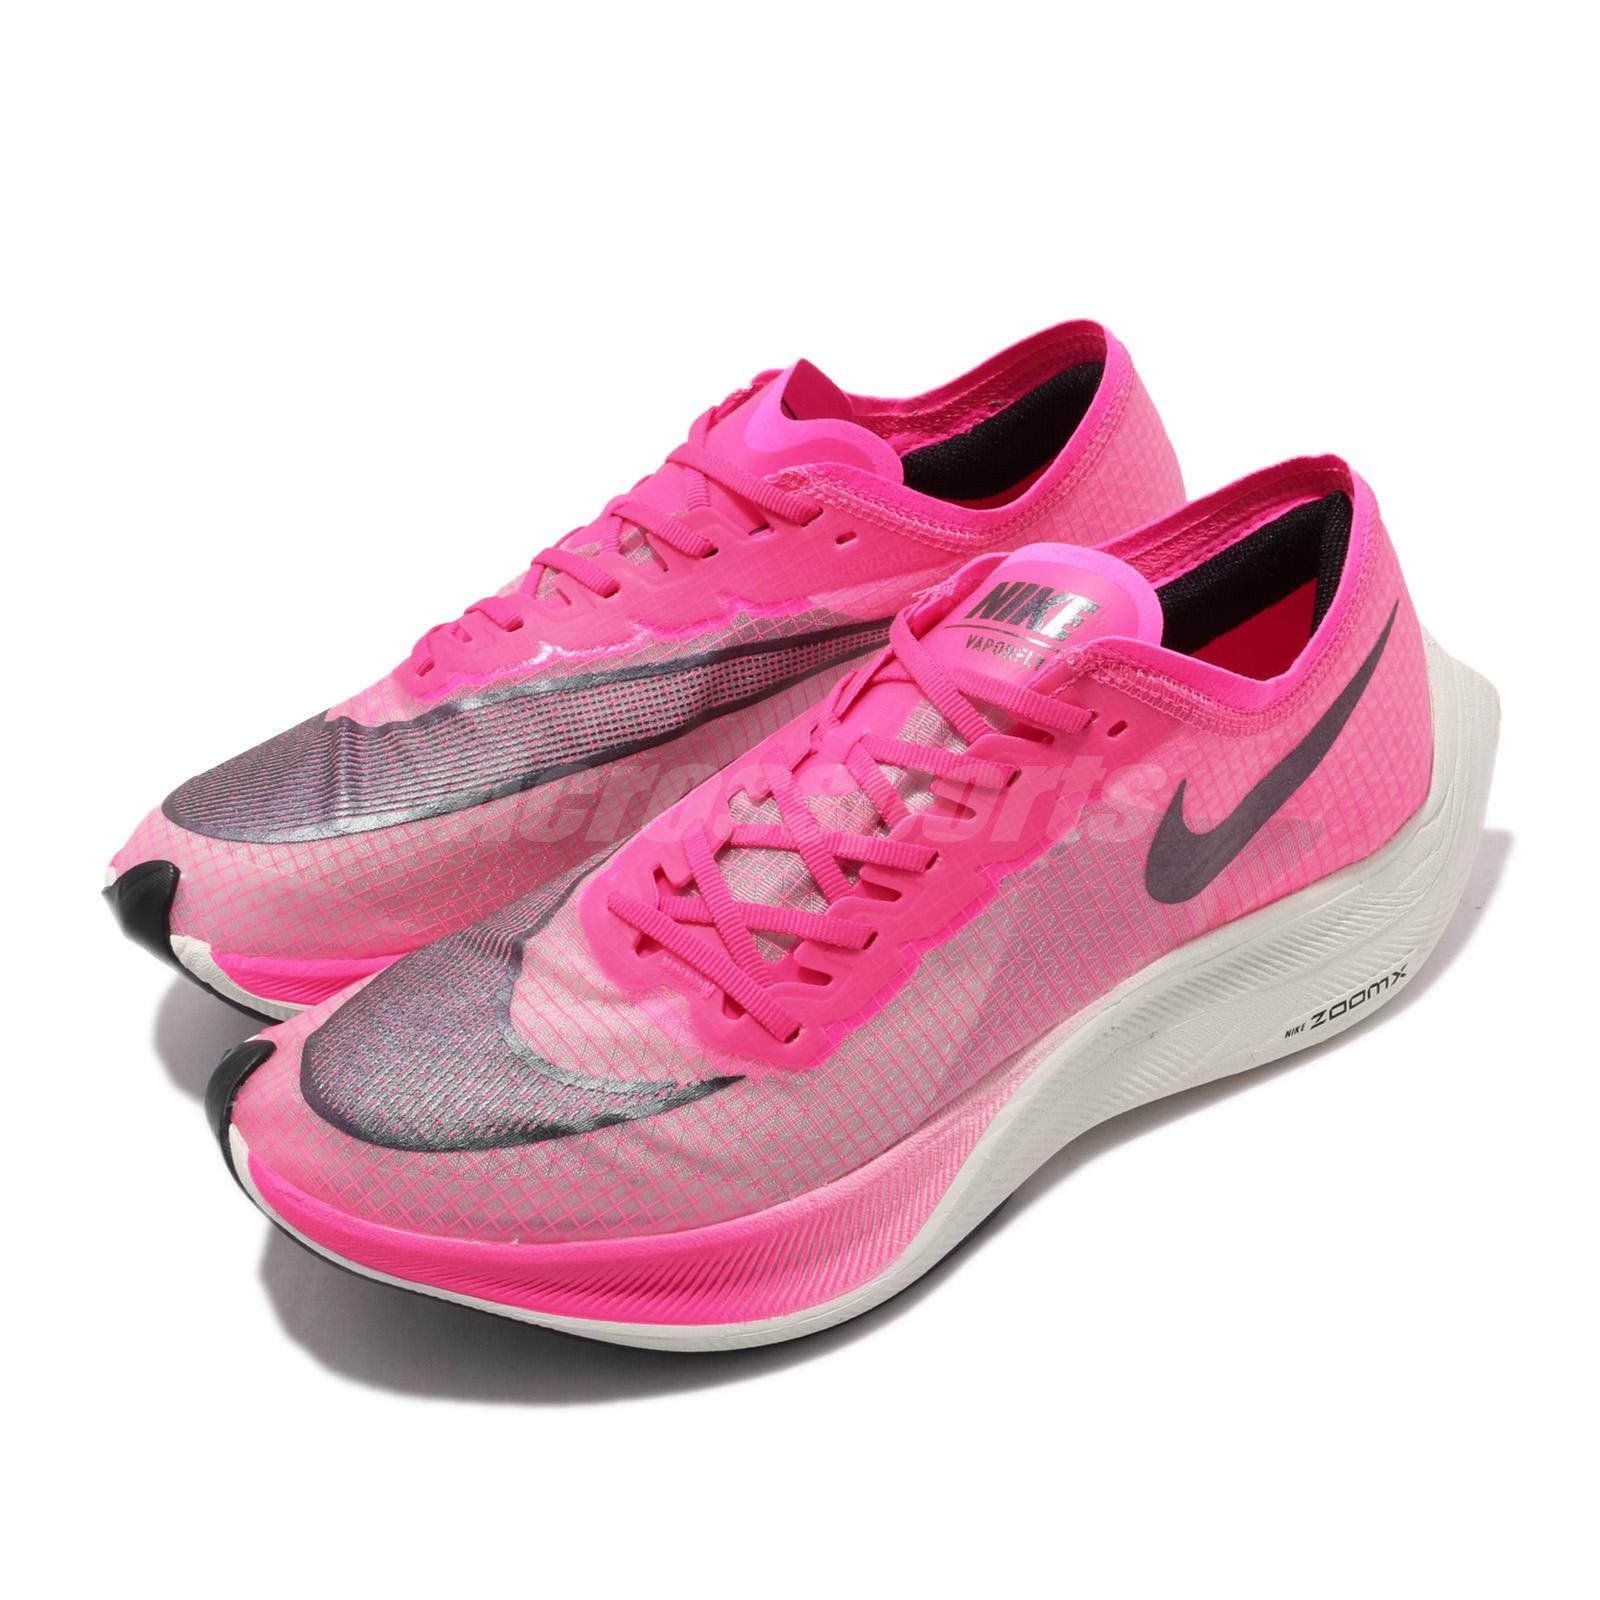 Details about Nike ZoomX Vaporfly NEXT% Pink Blast Black Mens Womens  Running Shoes AO4568-600